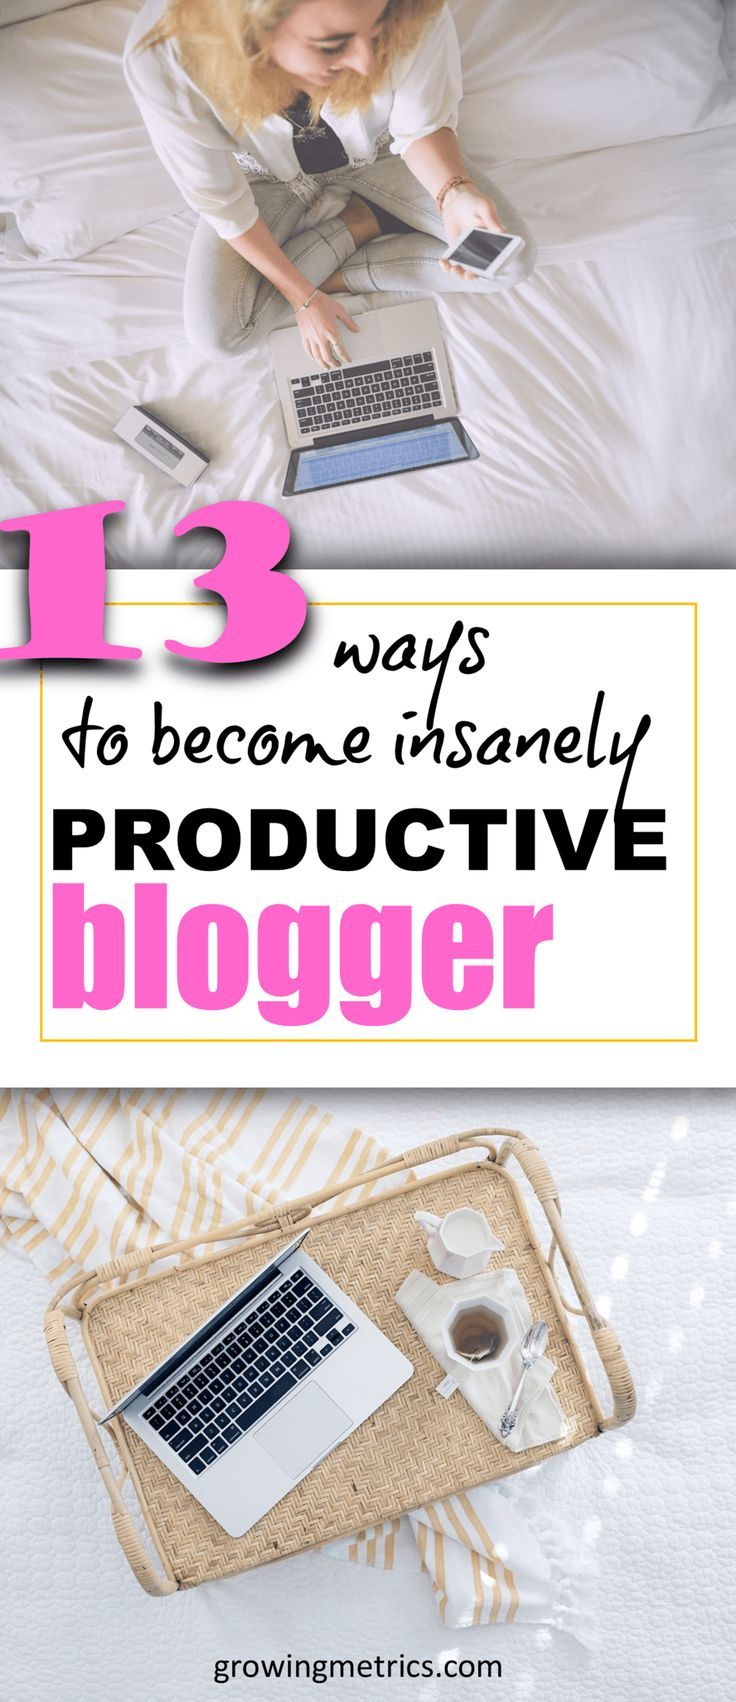 No BS 13 Ways to an Insanely Productive Blogger in